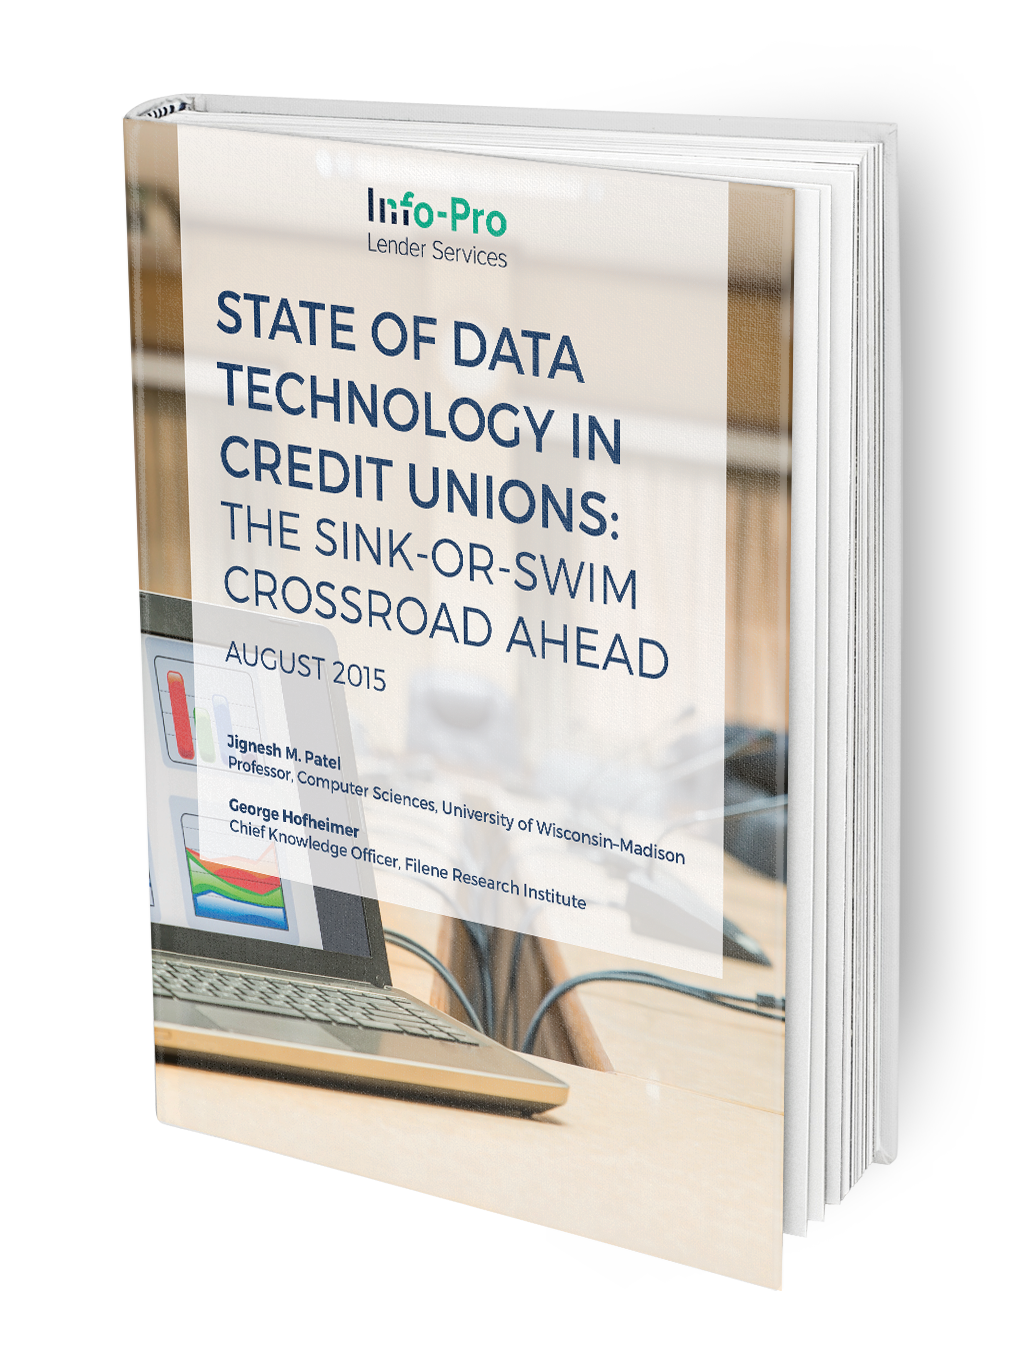 State of Data Technology in Credit Unions